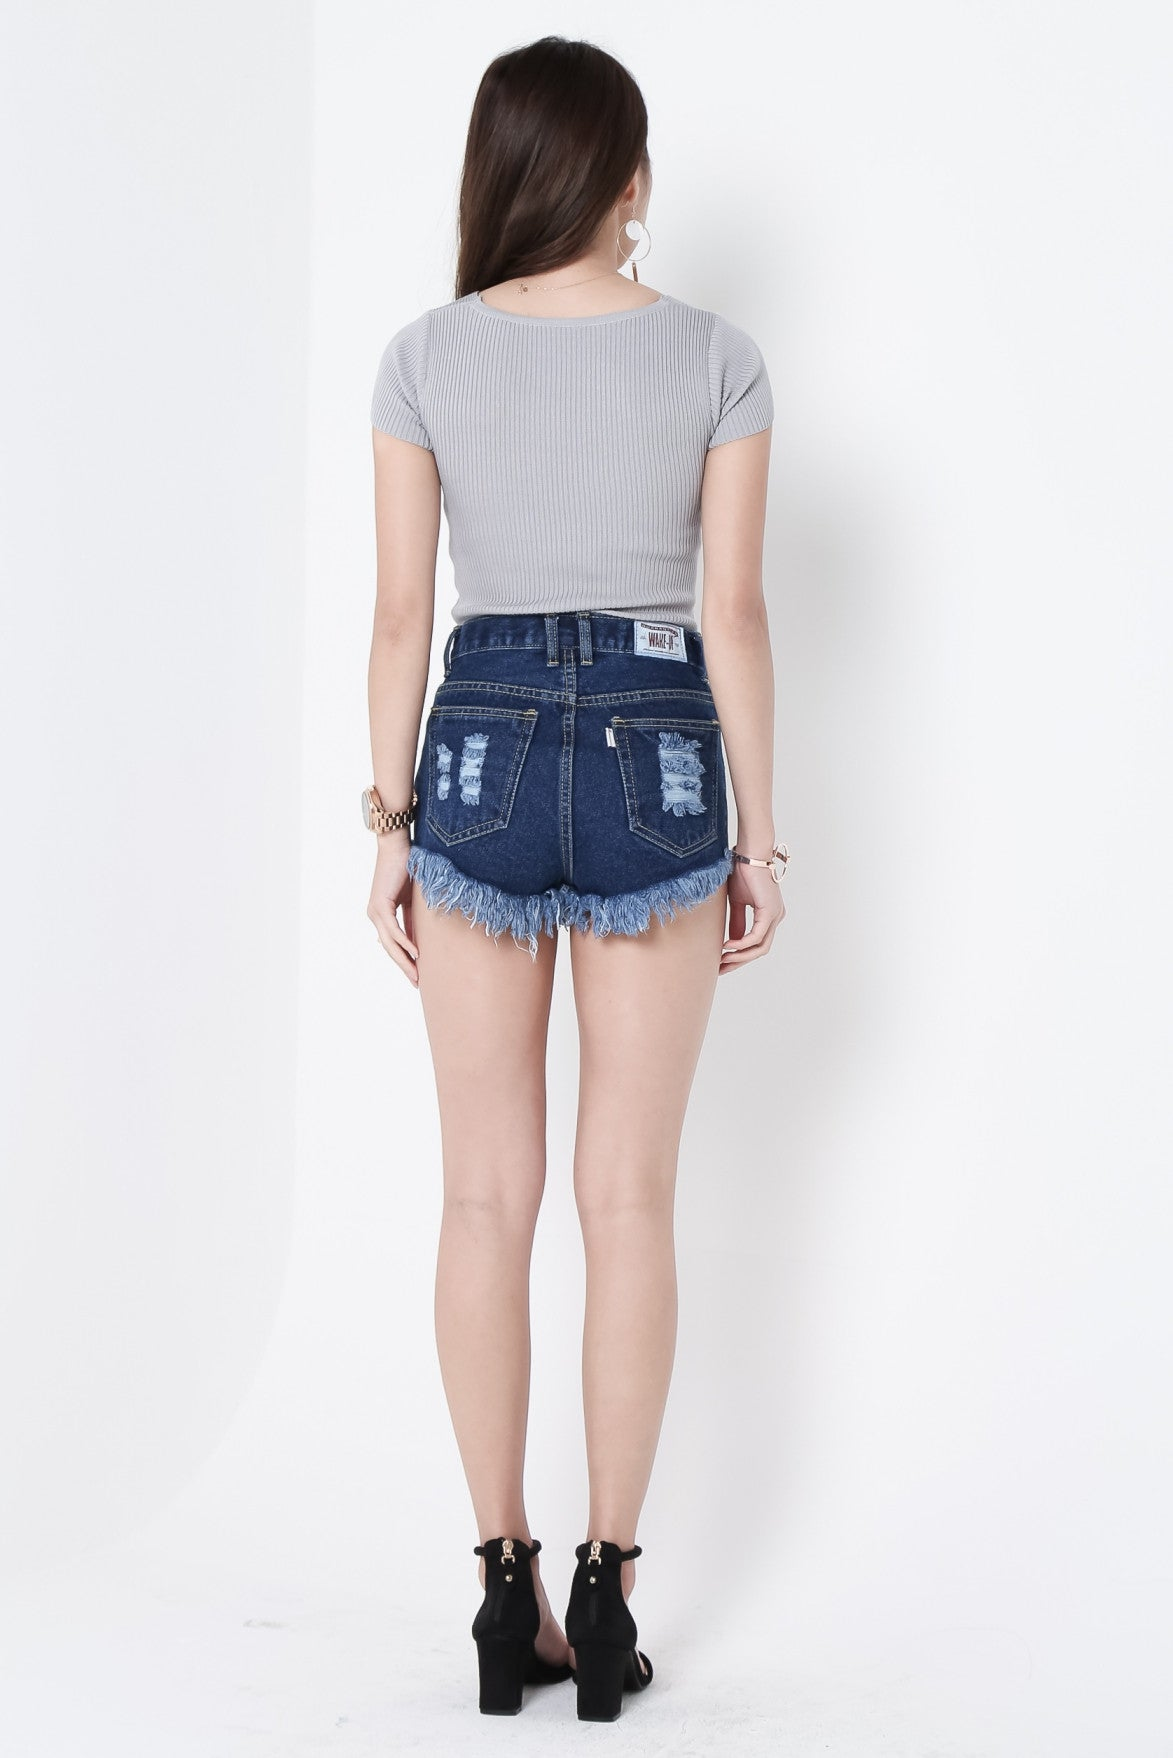 (RESTOCKED) MADE FOR YOU RIPPED DENIM SHORTS IN DARK WASH - TOPAZETTE